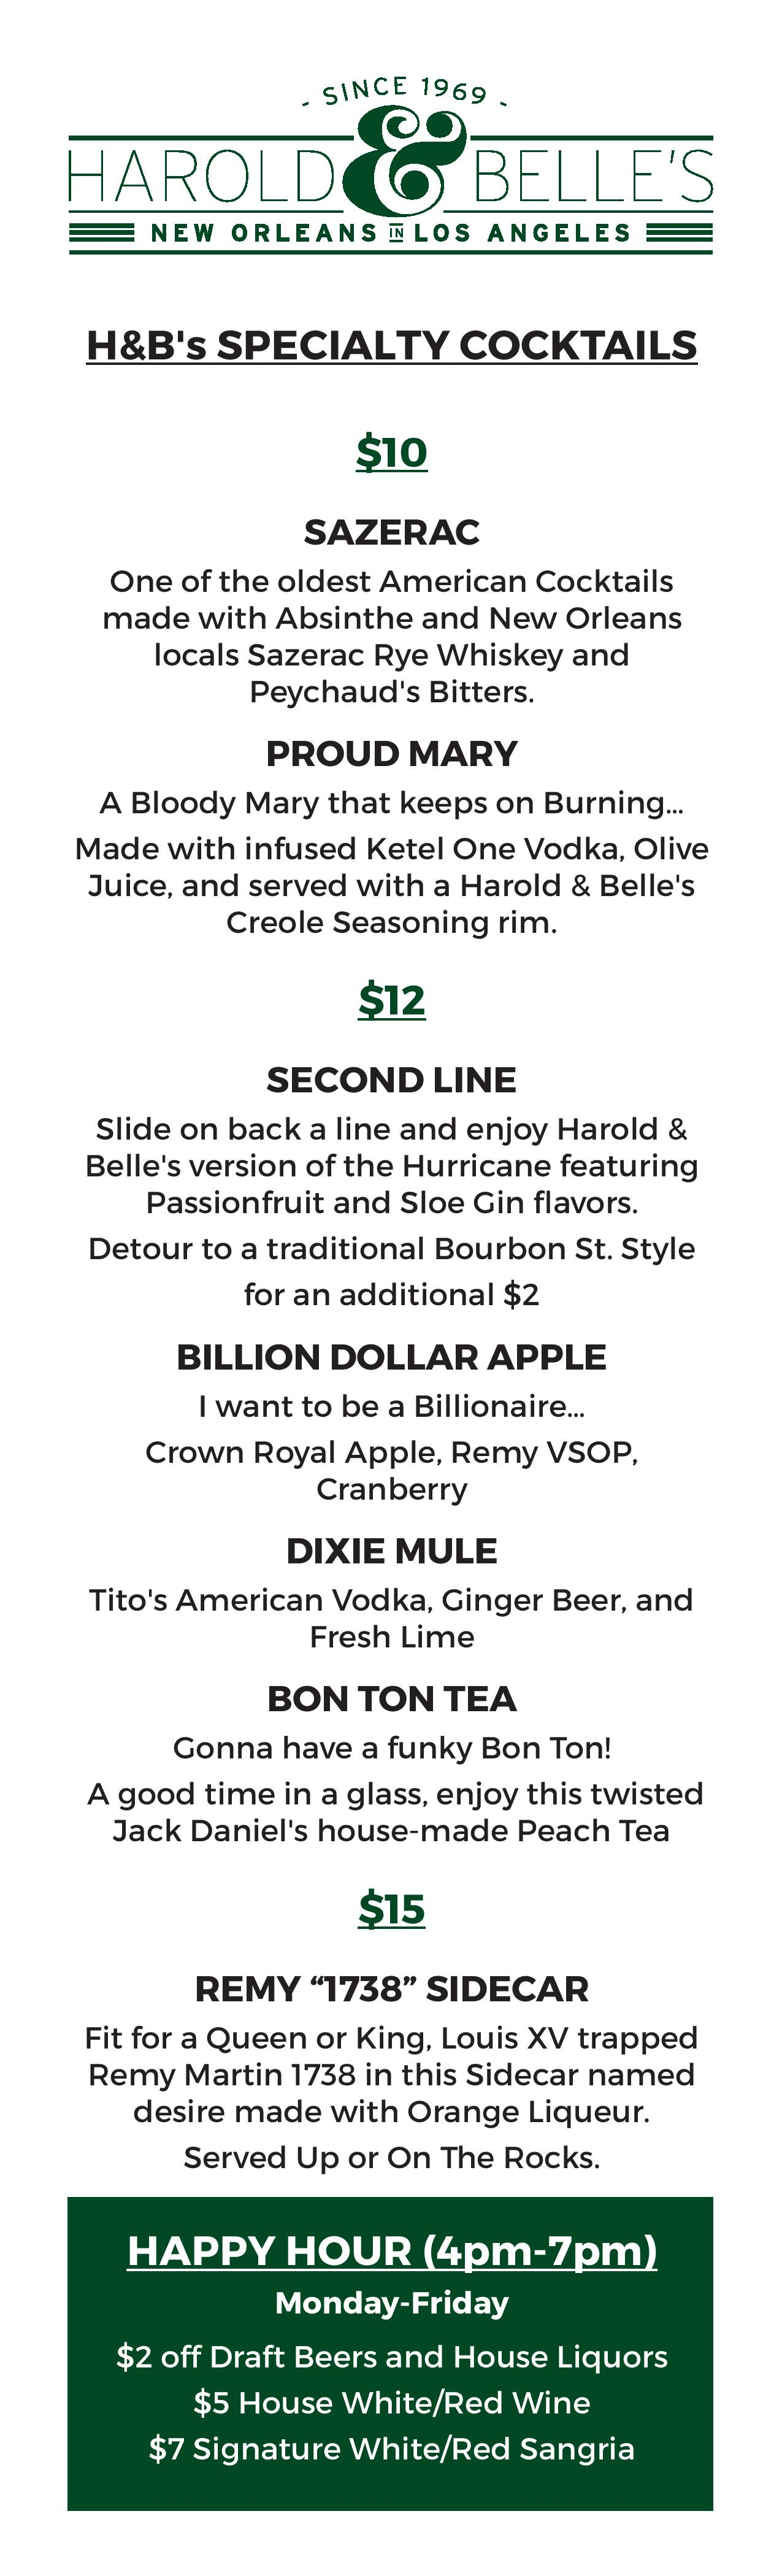 H&B Wine and Cocktail Menu Page 1.jpg